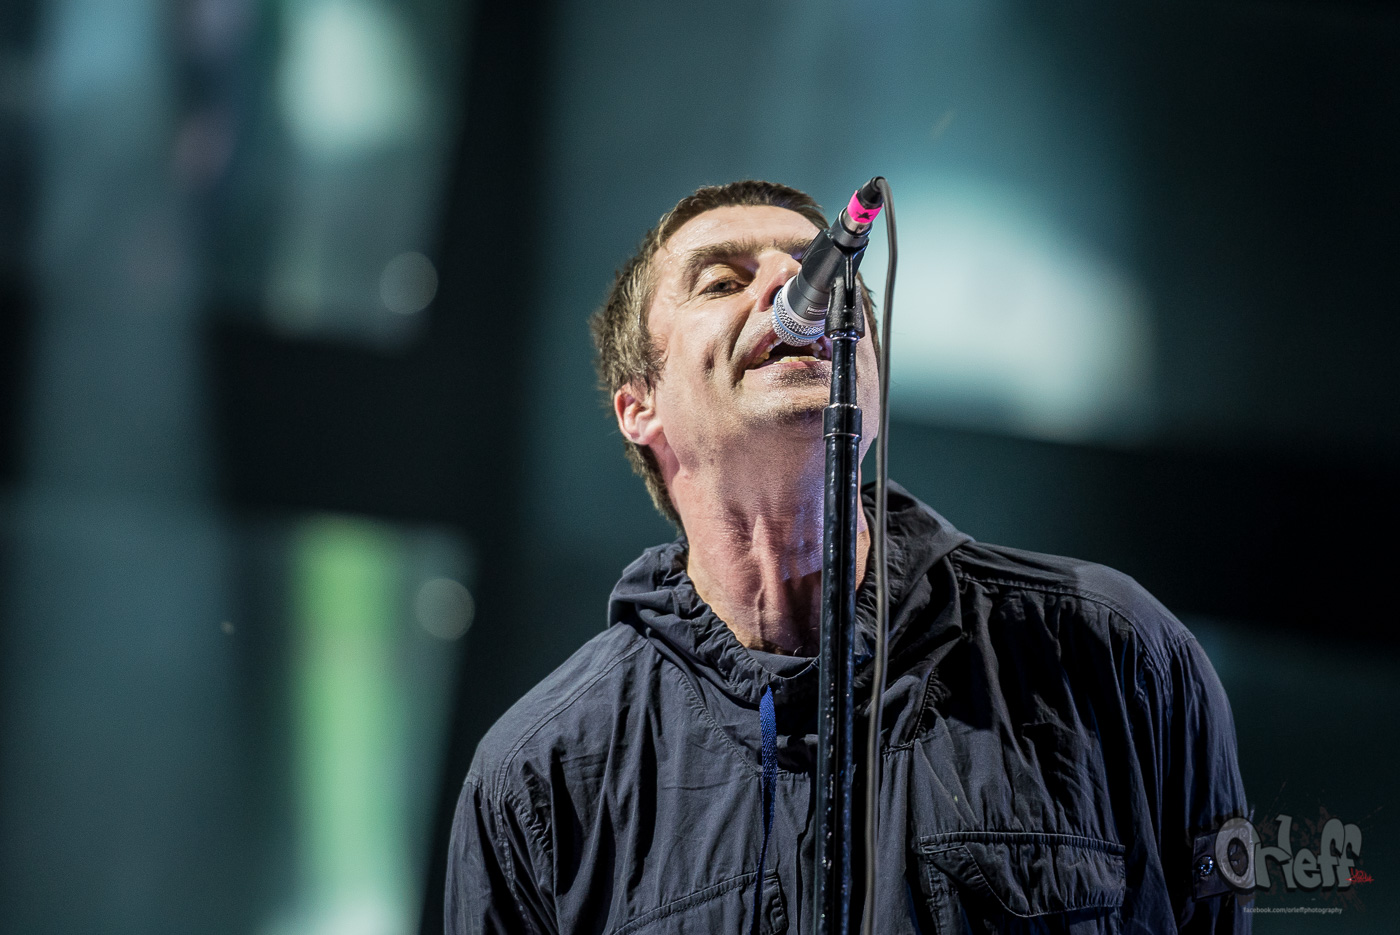 Liam Gallagher @ EXIT Festival, 2017